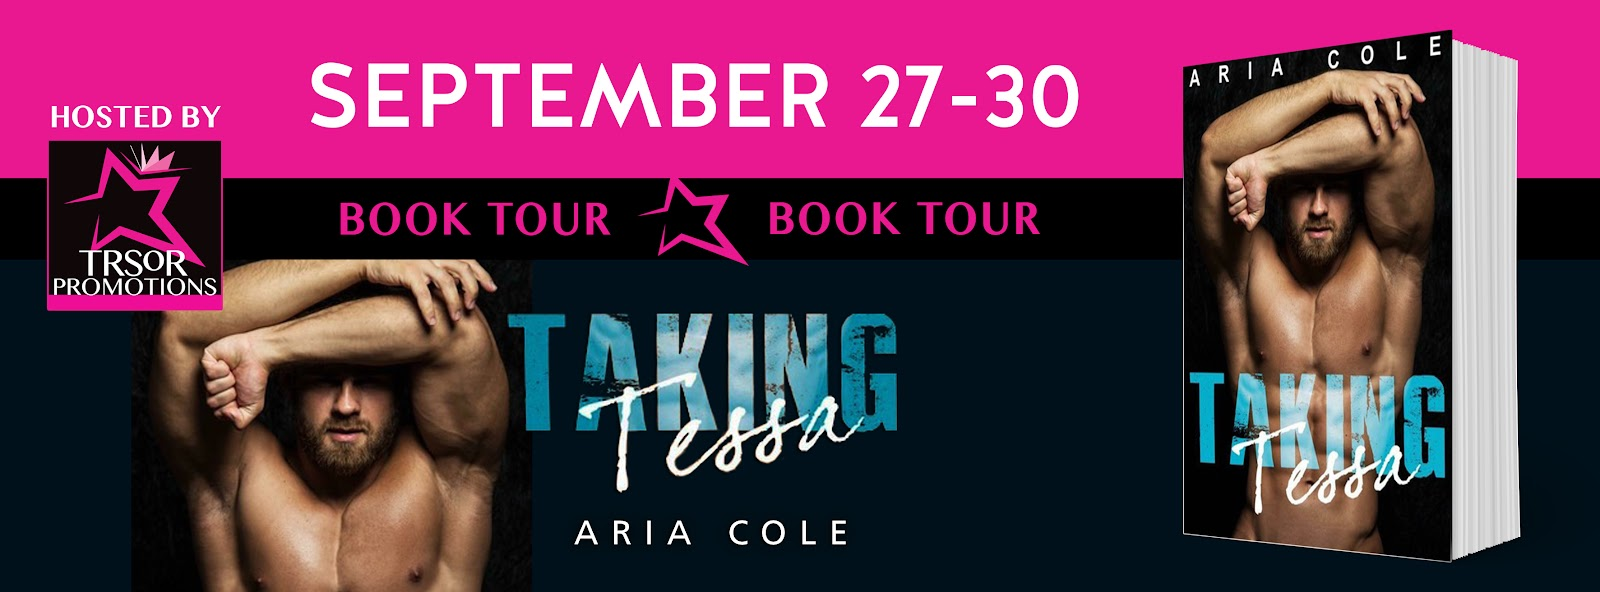 TAKING_TESSA_BOOK_TOUR.jpg